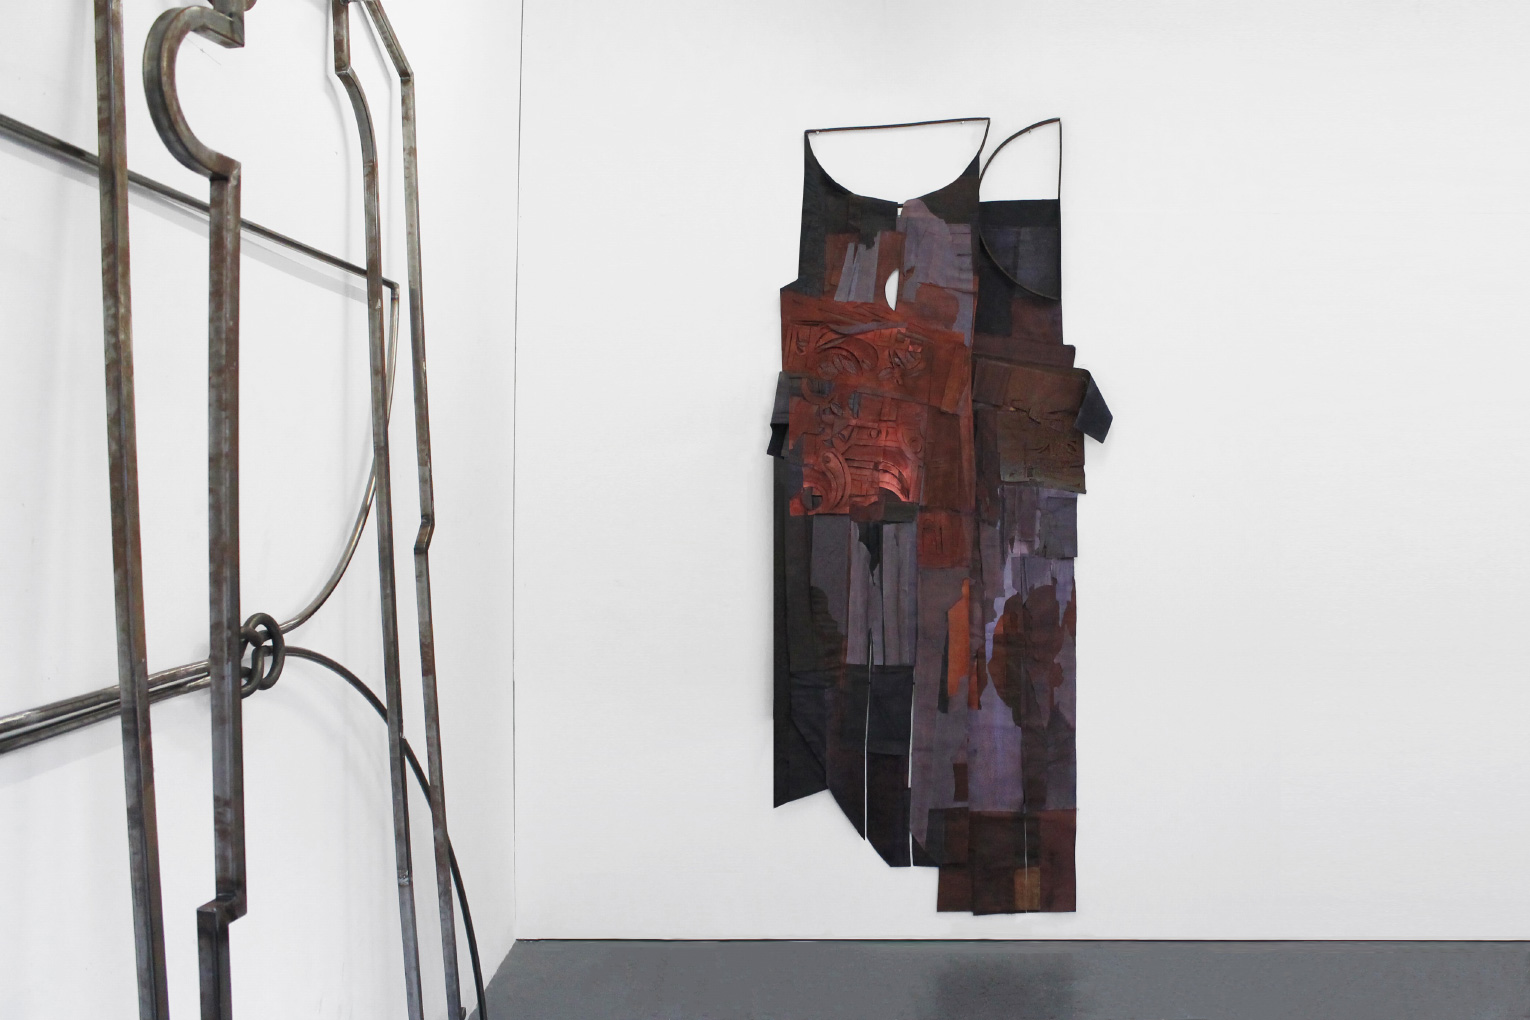 <b>Title:</b>And nothing but an echo replies<br /><b>Year:</b>2021<br /><b>Medium:</b>Fabric dye and pigment on canvas, steel<br />